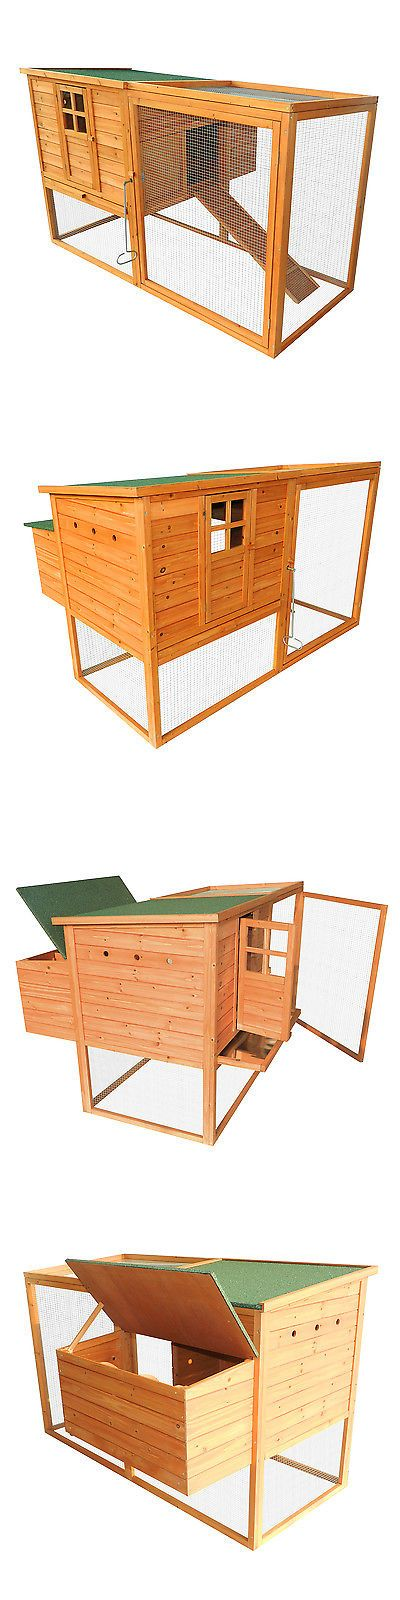 Backyard Poultry Supplies 177801: Pawhut Chicken Coop Wood Poultry Deluxe Nesting Box Hen House Hutch Run Backyard BUY IT NOW ONLY: $199.99